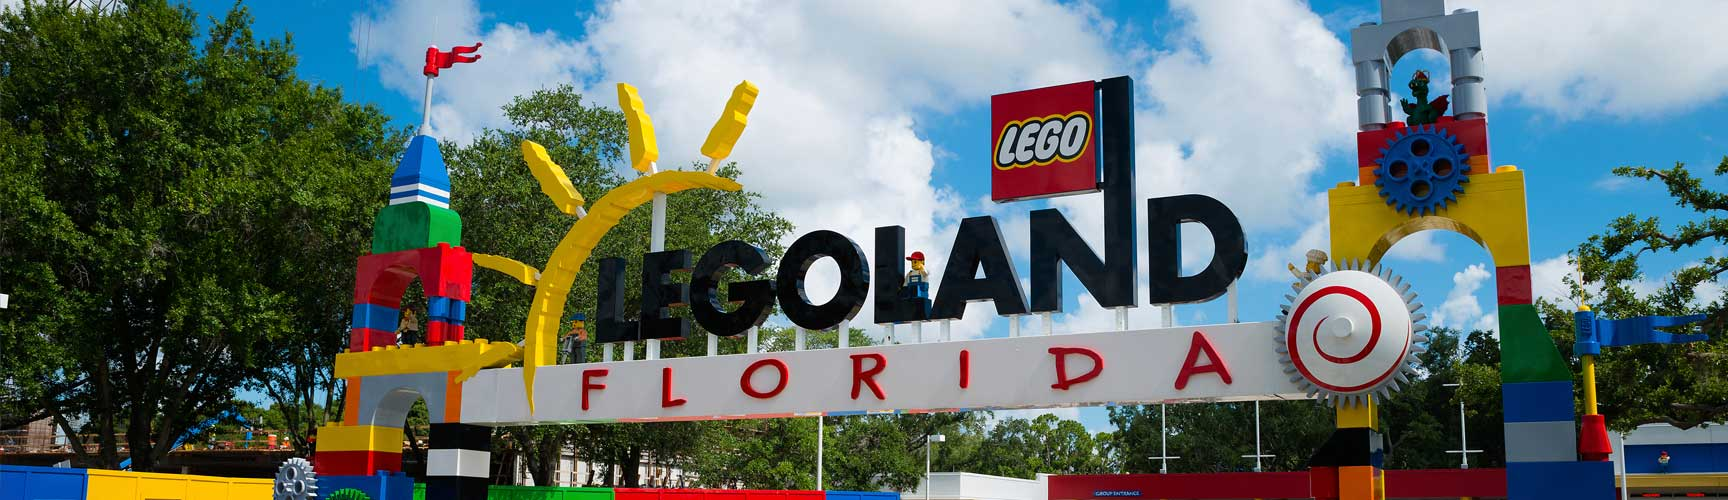 LegoLand Florida Is Minutes Away.